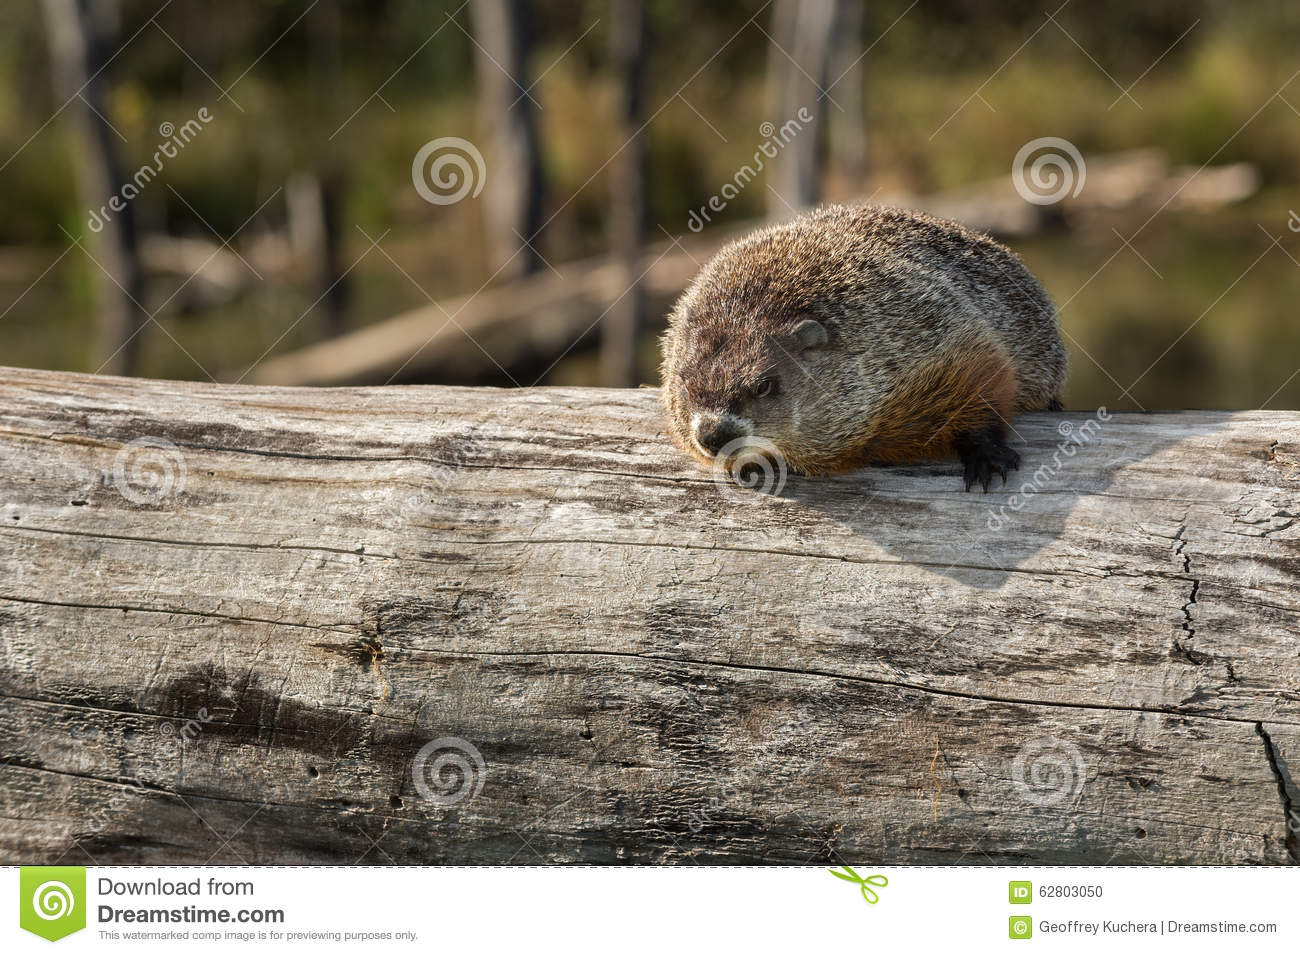 Woodchuck (Marmota monax) Looks Out from Atop Log